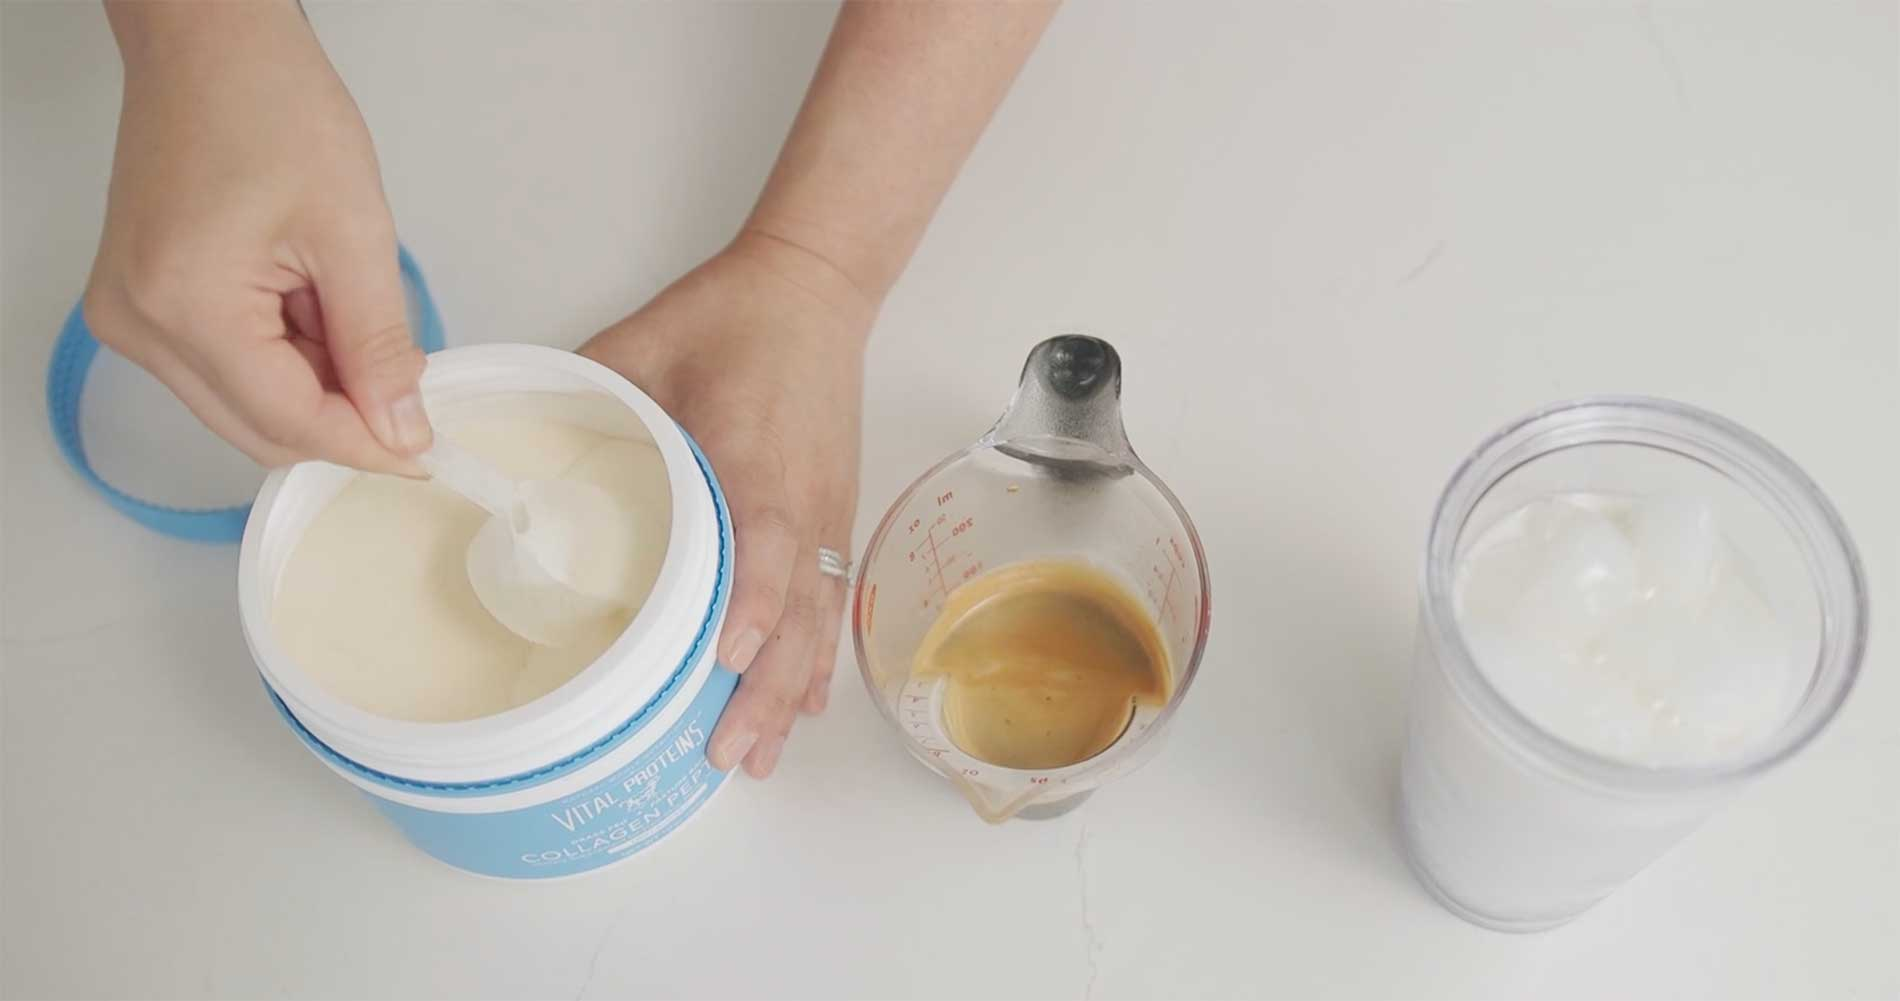 A hand holding a measuring cup is scooping up some collagen powder next to a glass of iced coffee ingredients.